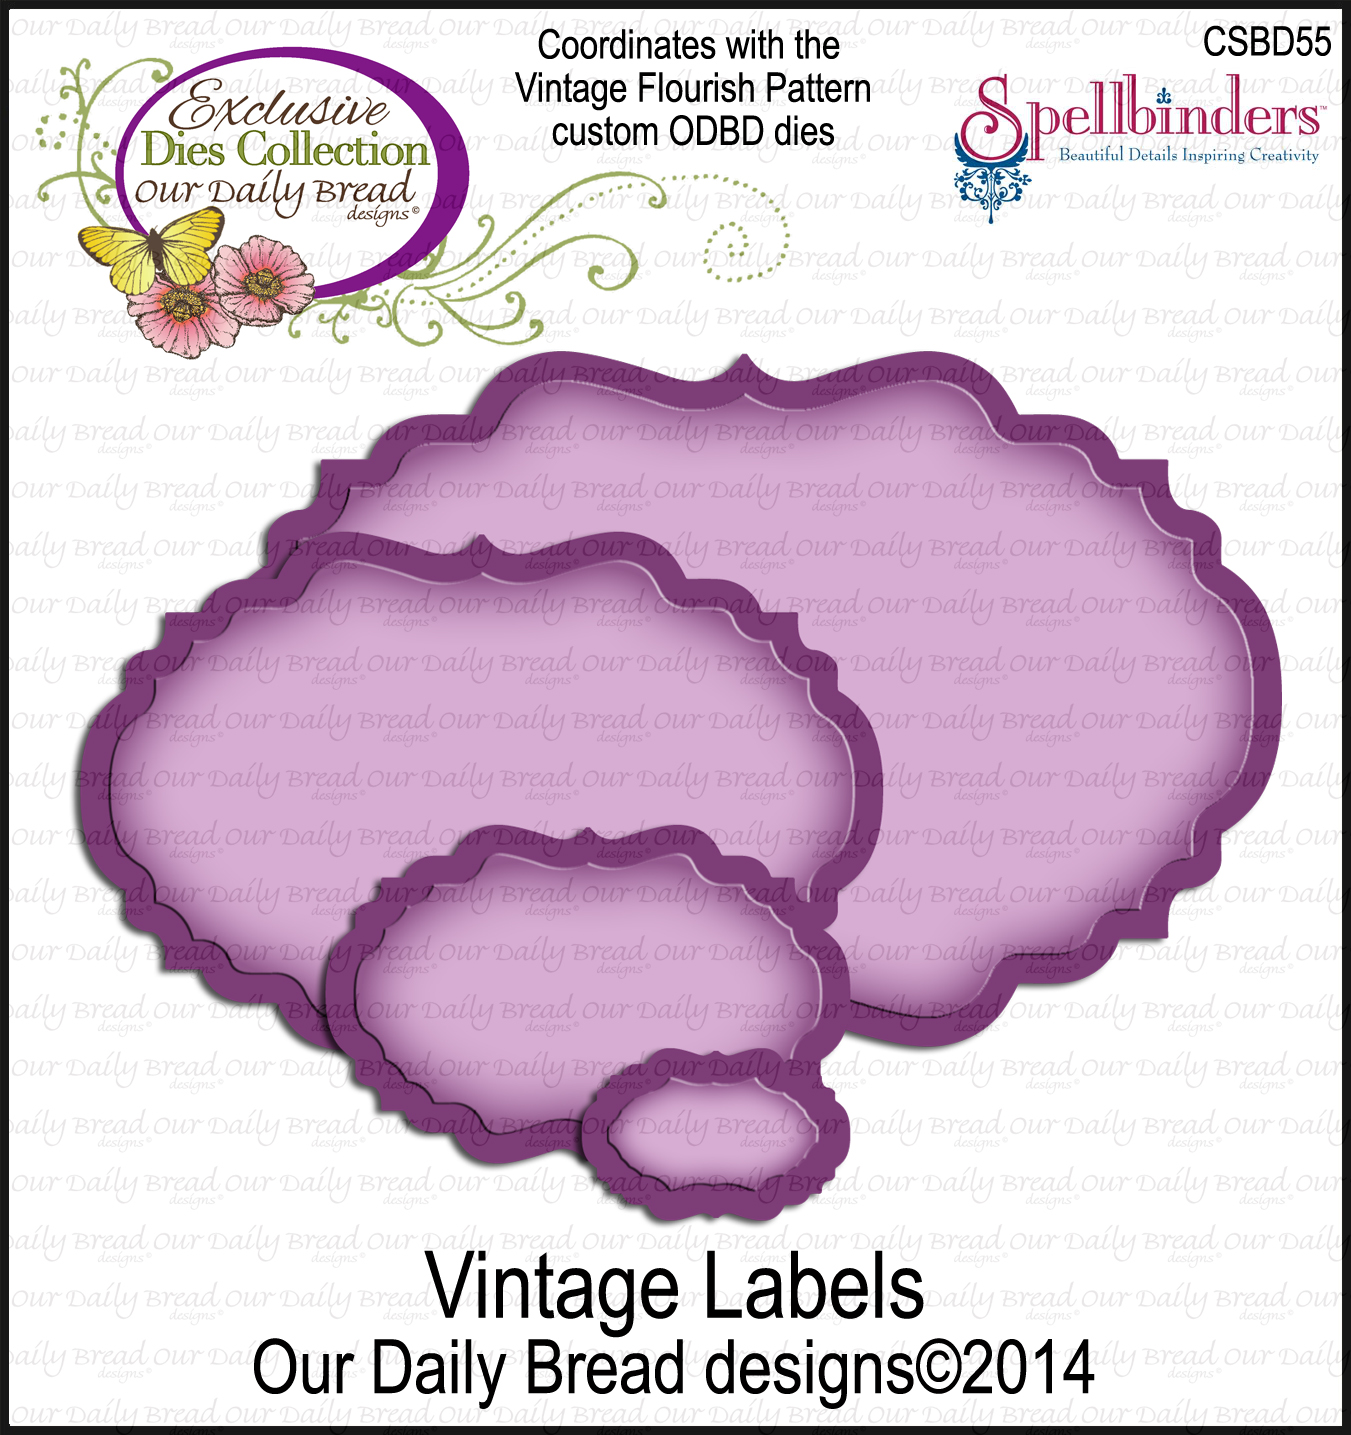 http://www.ourdailybreaddesigns.com/index.php/csbd55-vintage-label-dies.html